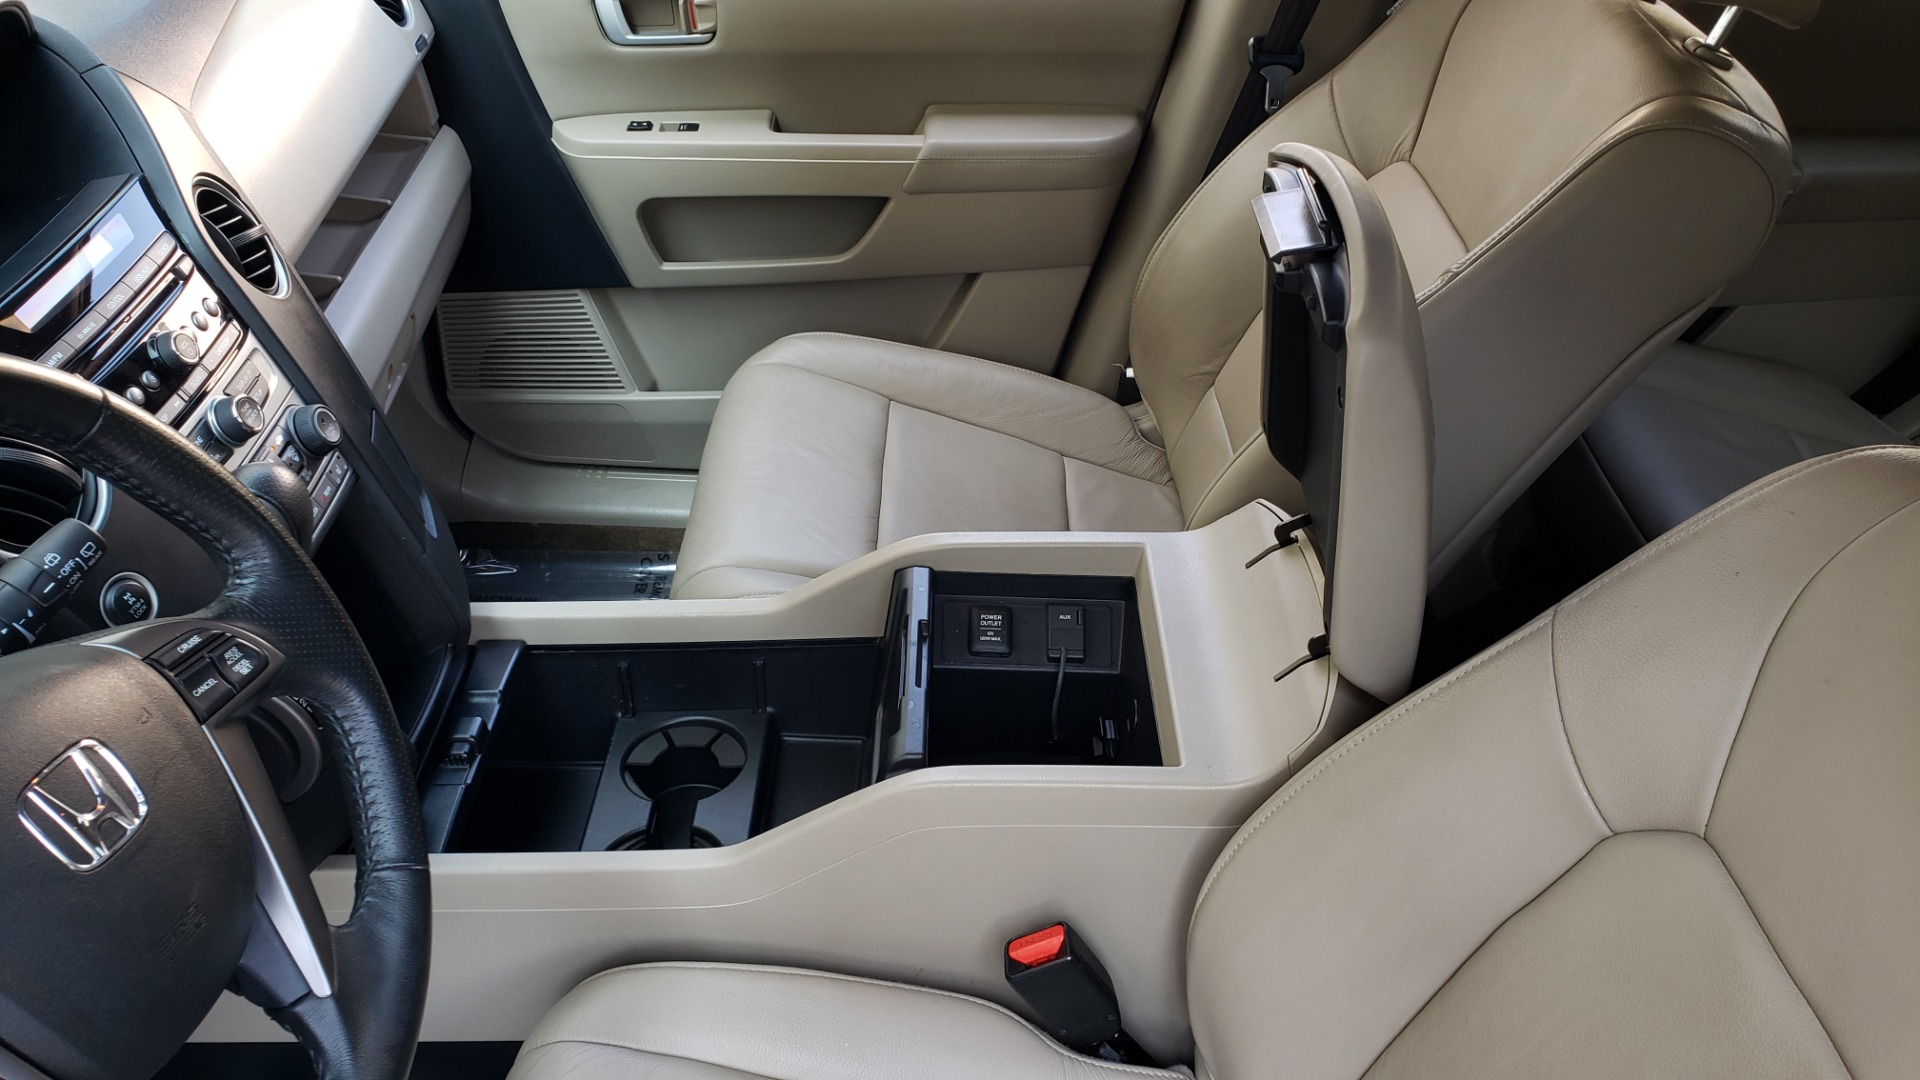 Used 2014 Honda PILOT EX-L / SUNROOF / HTD STS / DUAL-ZONE CLIMATE / REARVIEW for sale $16,995 at Formula Imports in Charlotte NC 28227 54